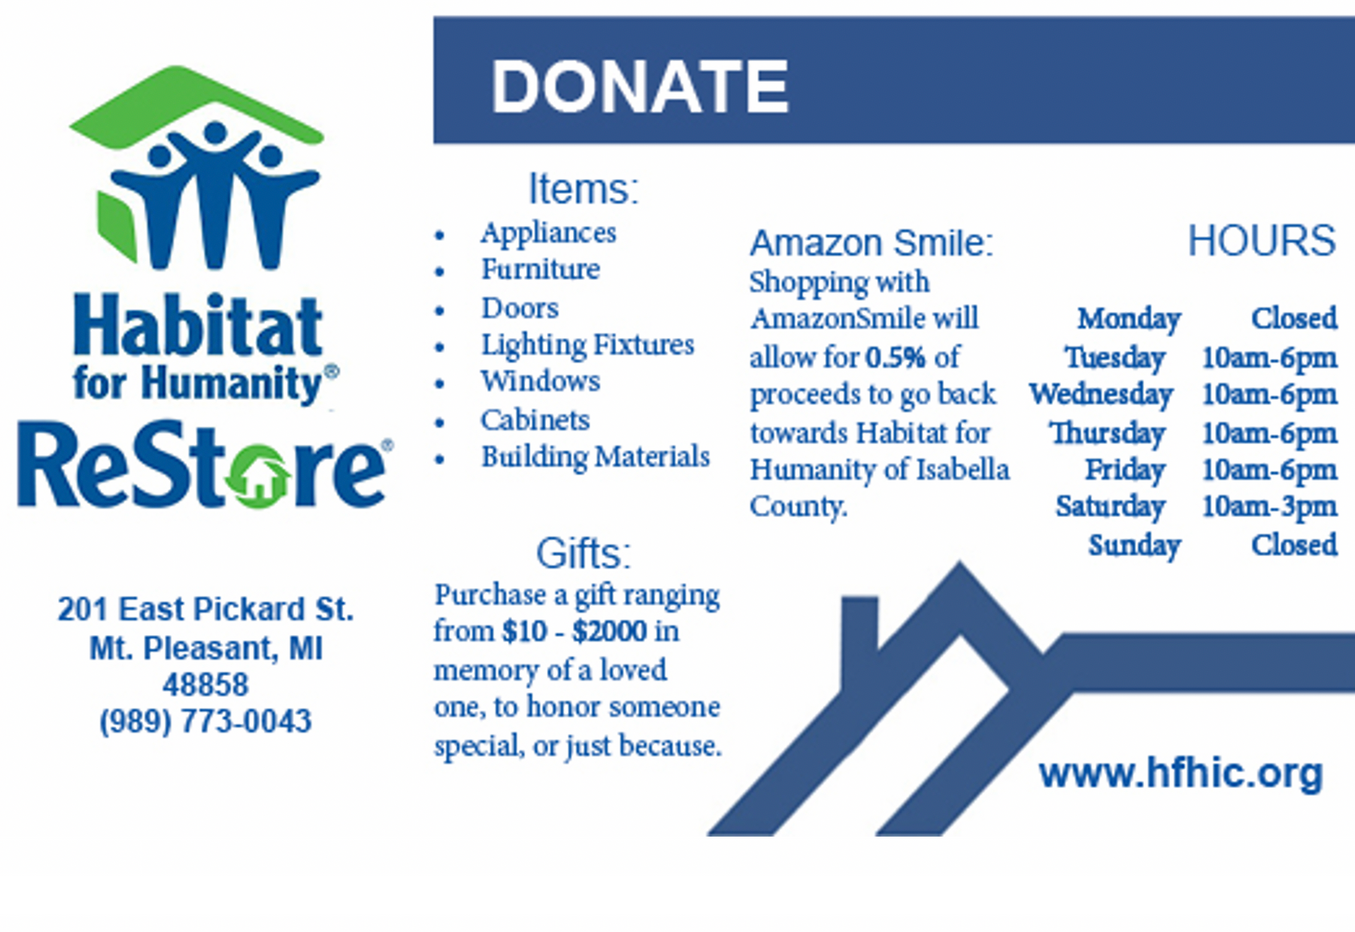 habitat for humanity .png